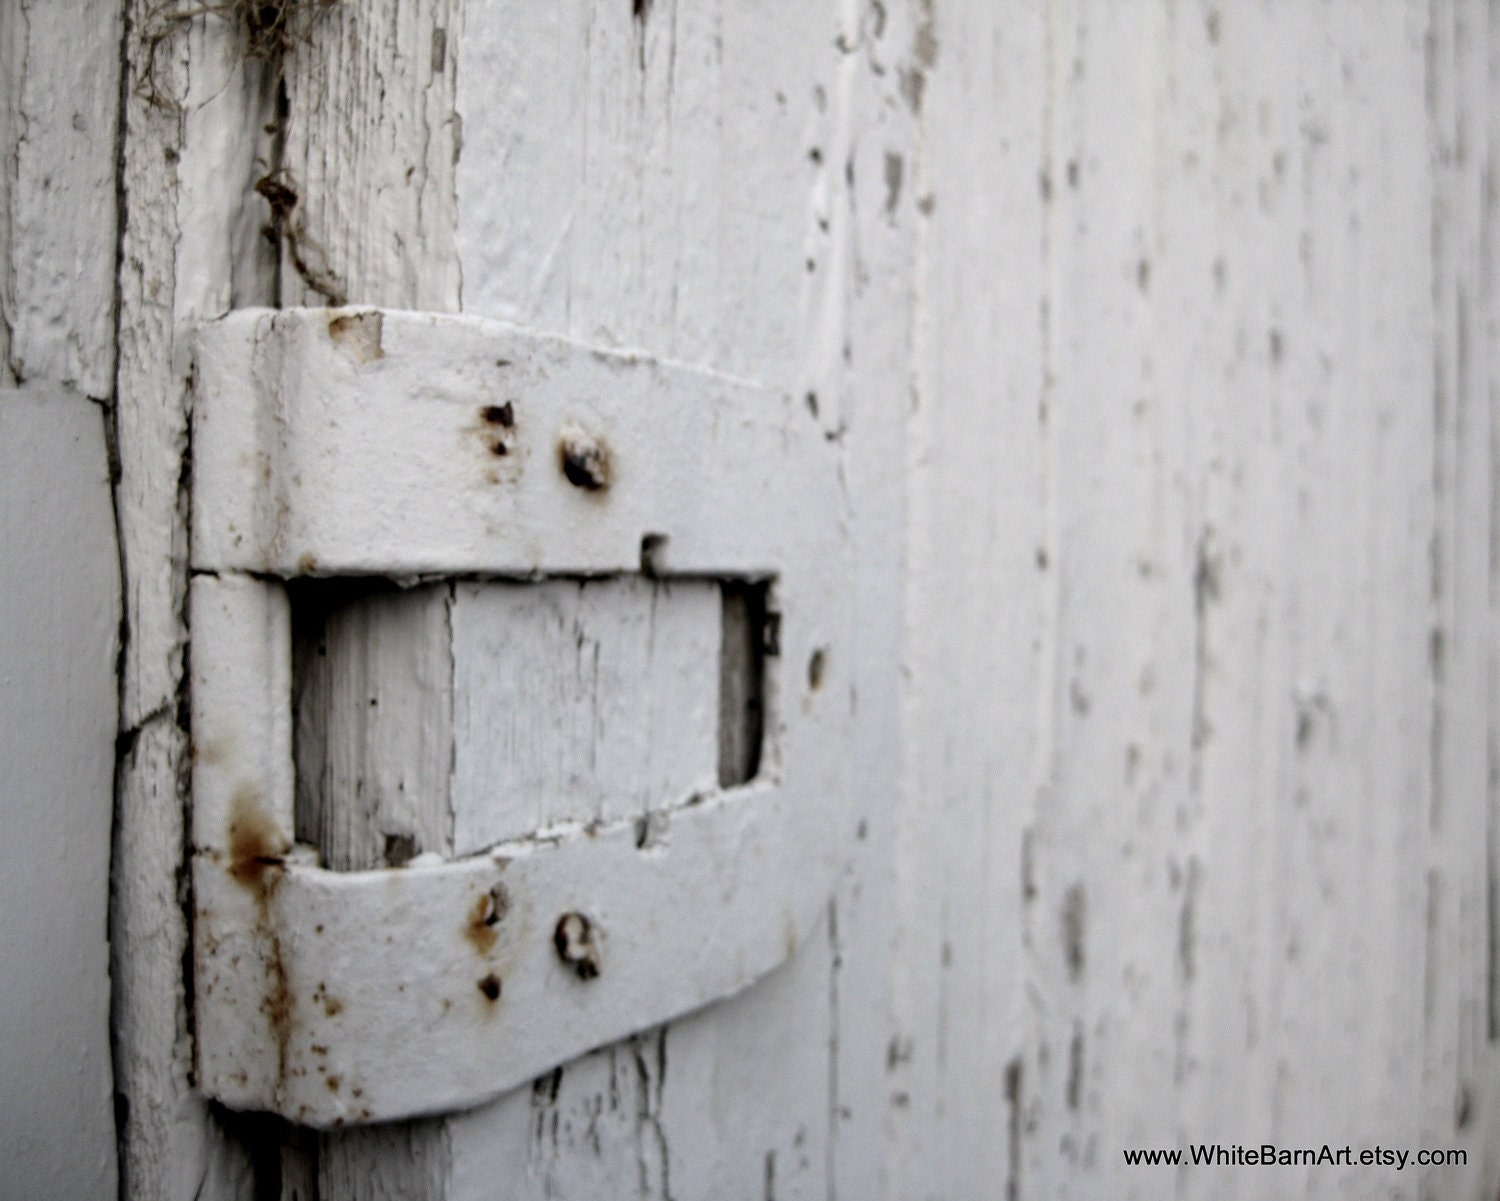 Steadfast  - 8 x 10 Fine Art Photography Print - Industrial Minimalist Barn Door Latch - FREE SHIPPING - White Barn Art - WhiteBarnArt